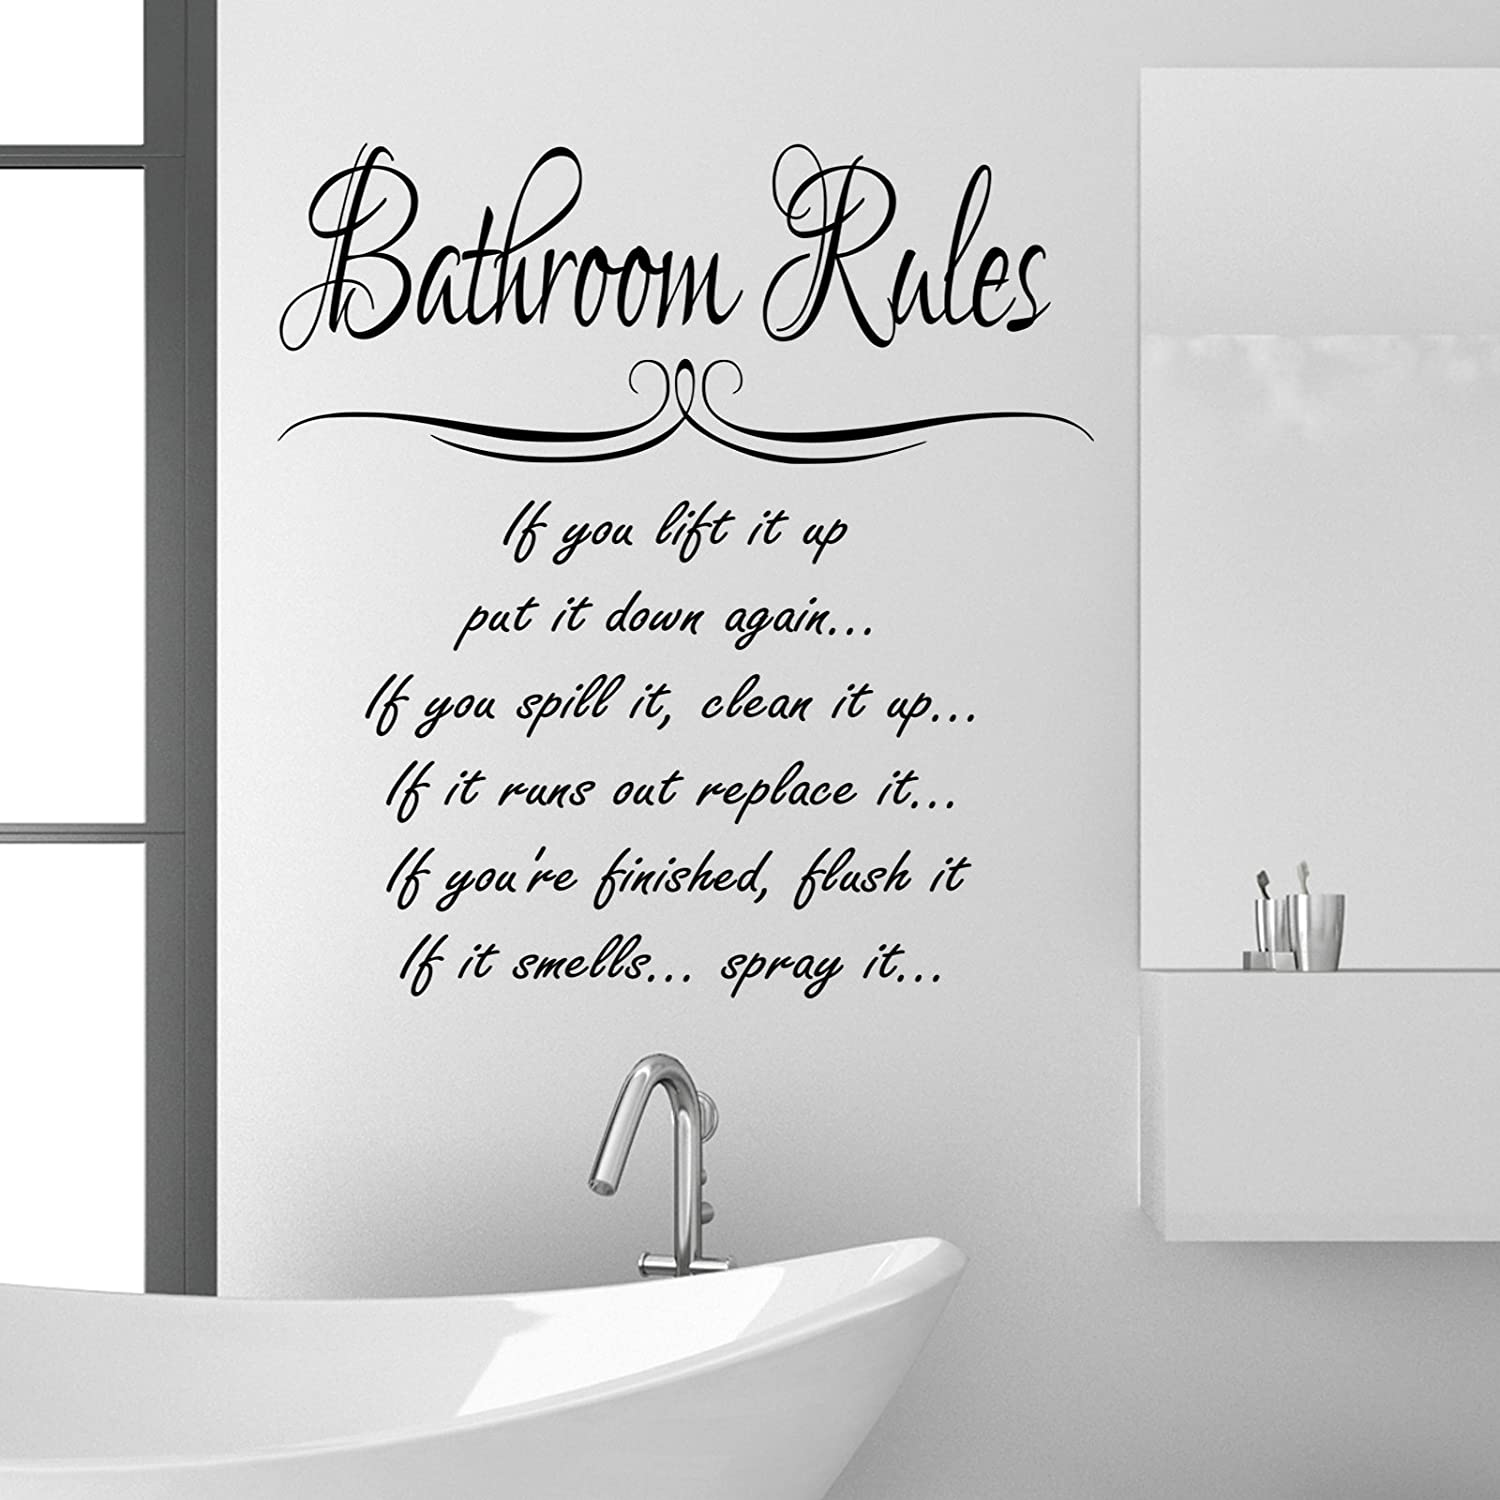 Bathroom Rules Wall Sticker Quote Funny Vinyl Decal Graphic - How do you put up vinyl wall decals